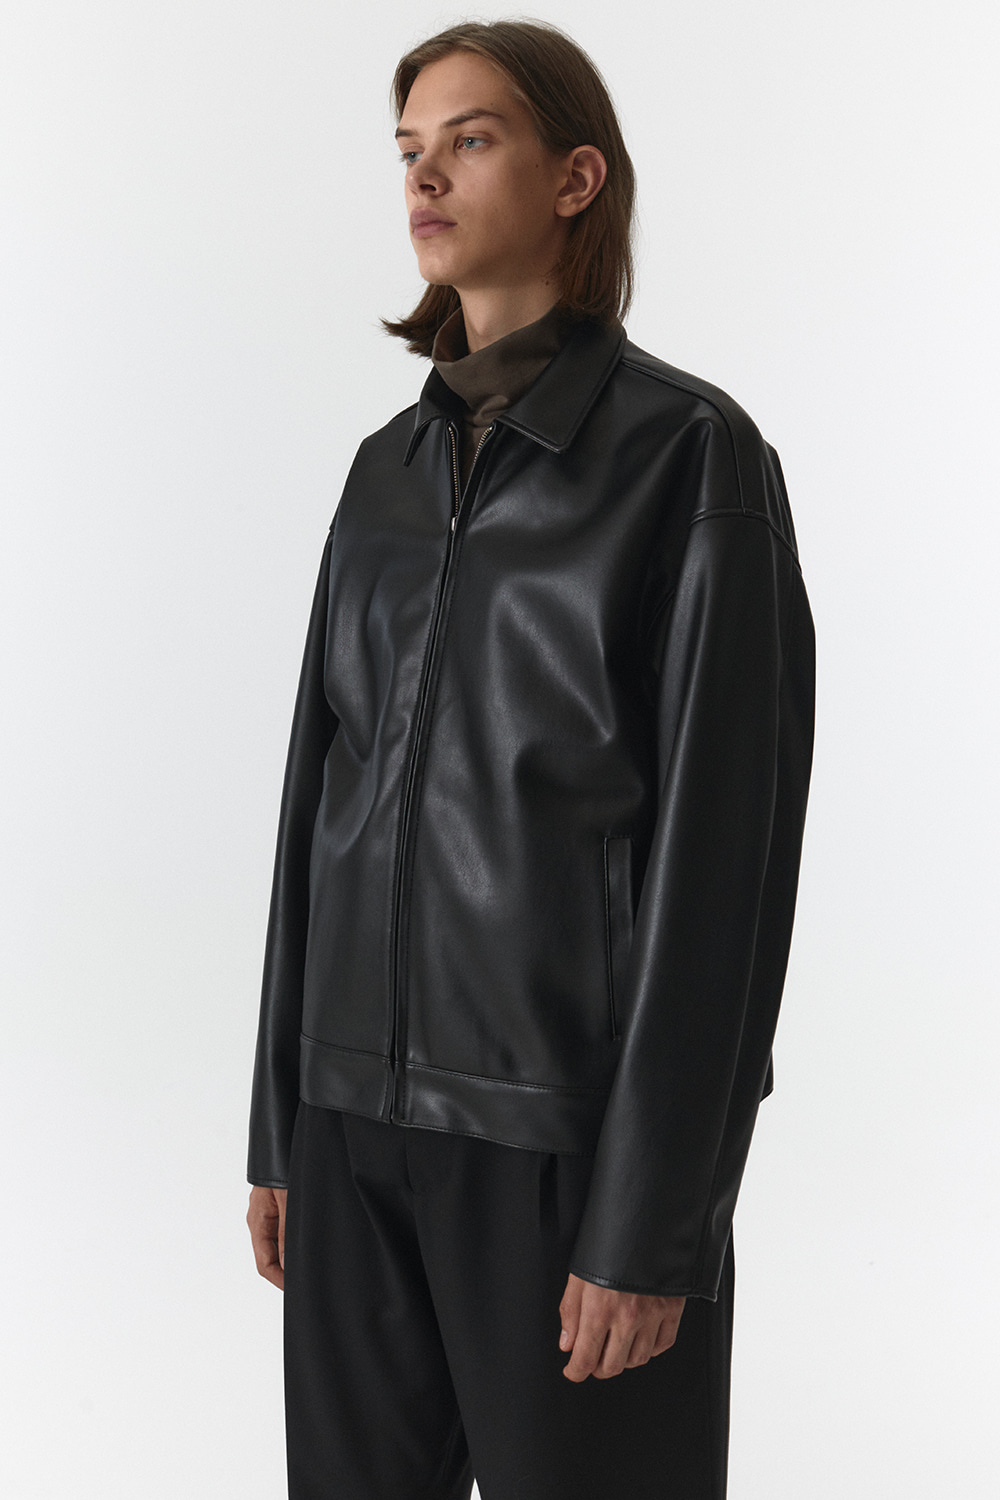 Oversize Leather Jacket Men [Black]